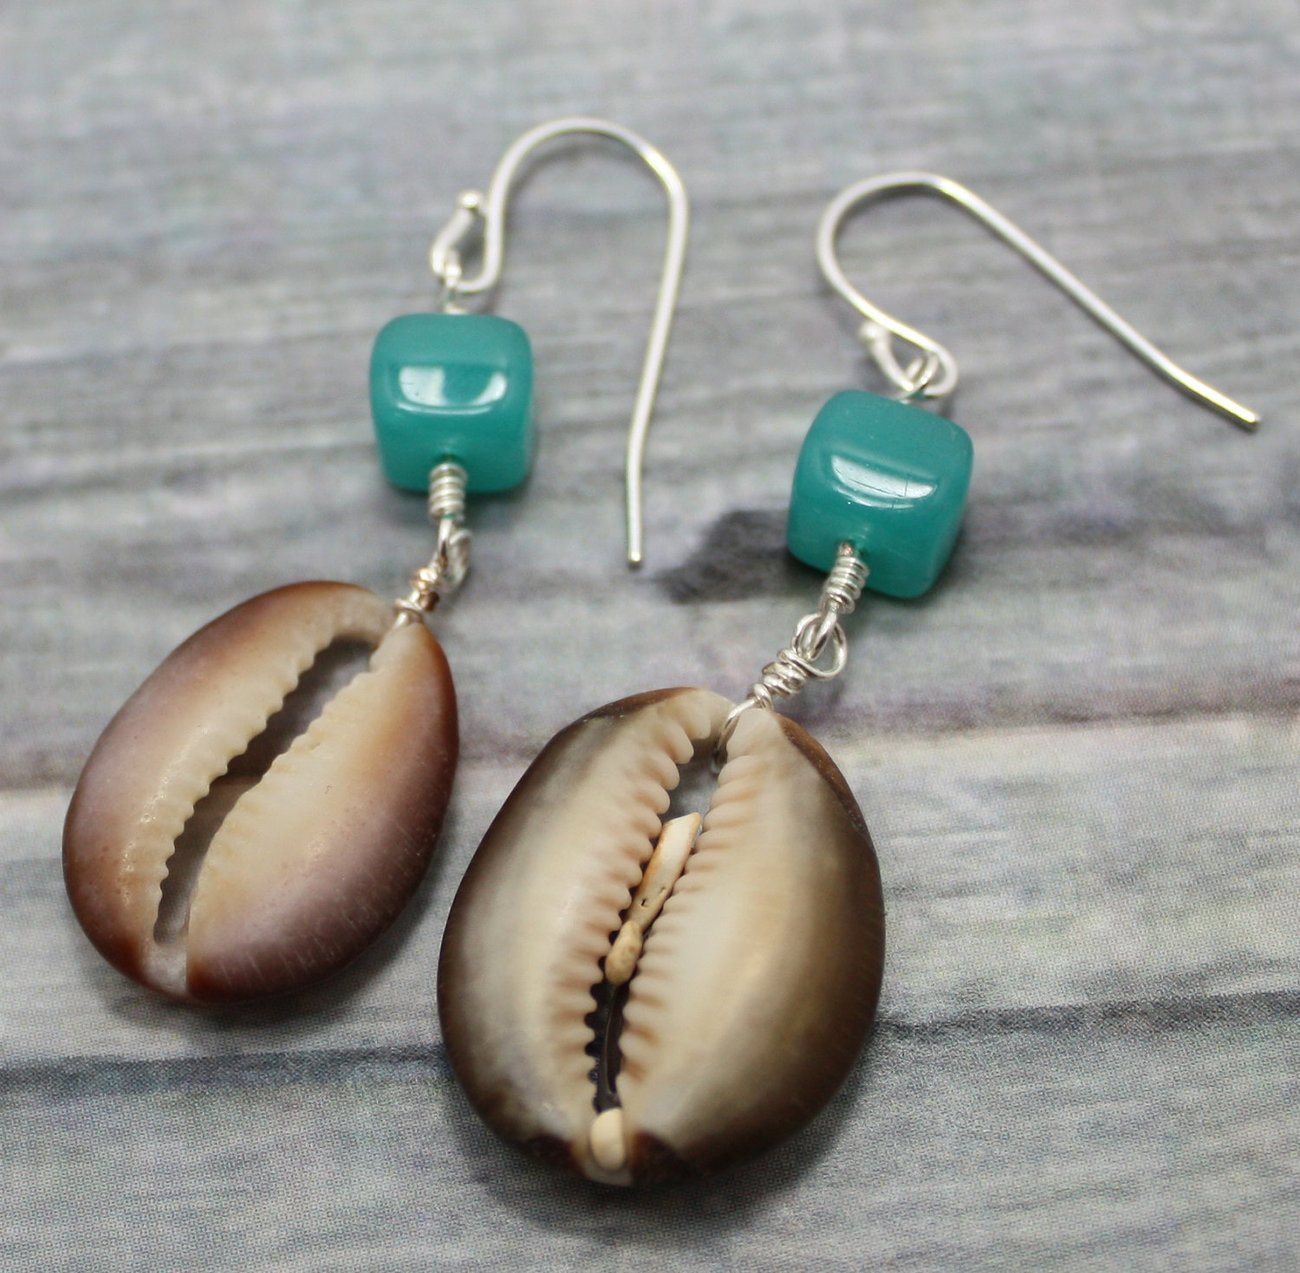 Earrings with Maui Sea Beach Half Cowrie Shells  Bali Style Ear Wires